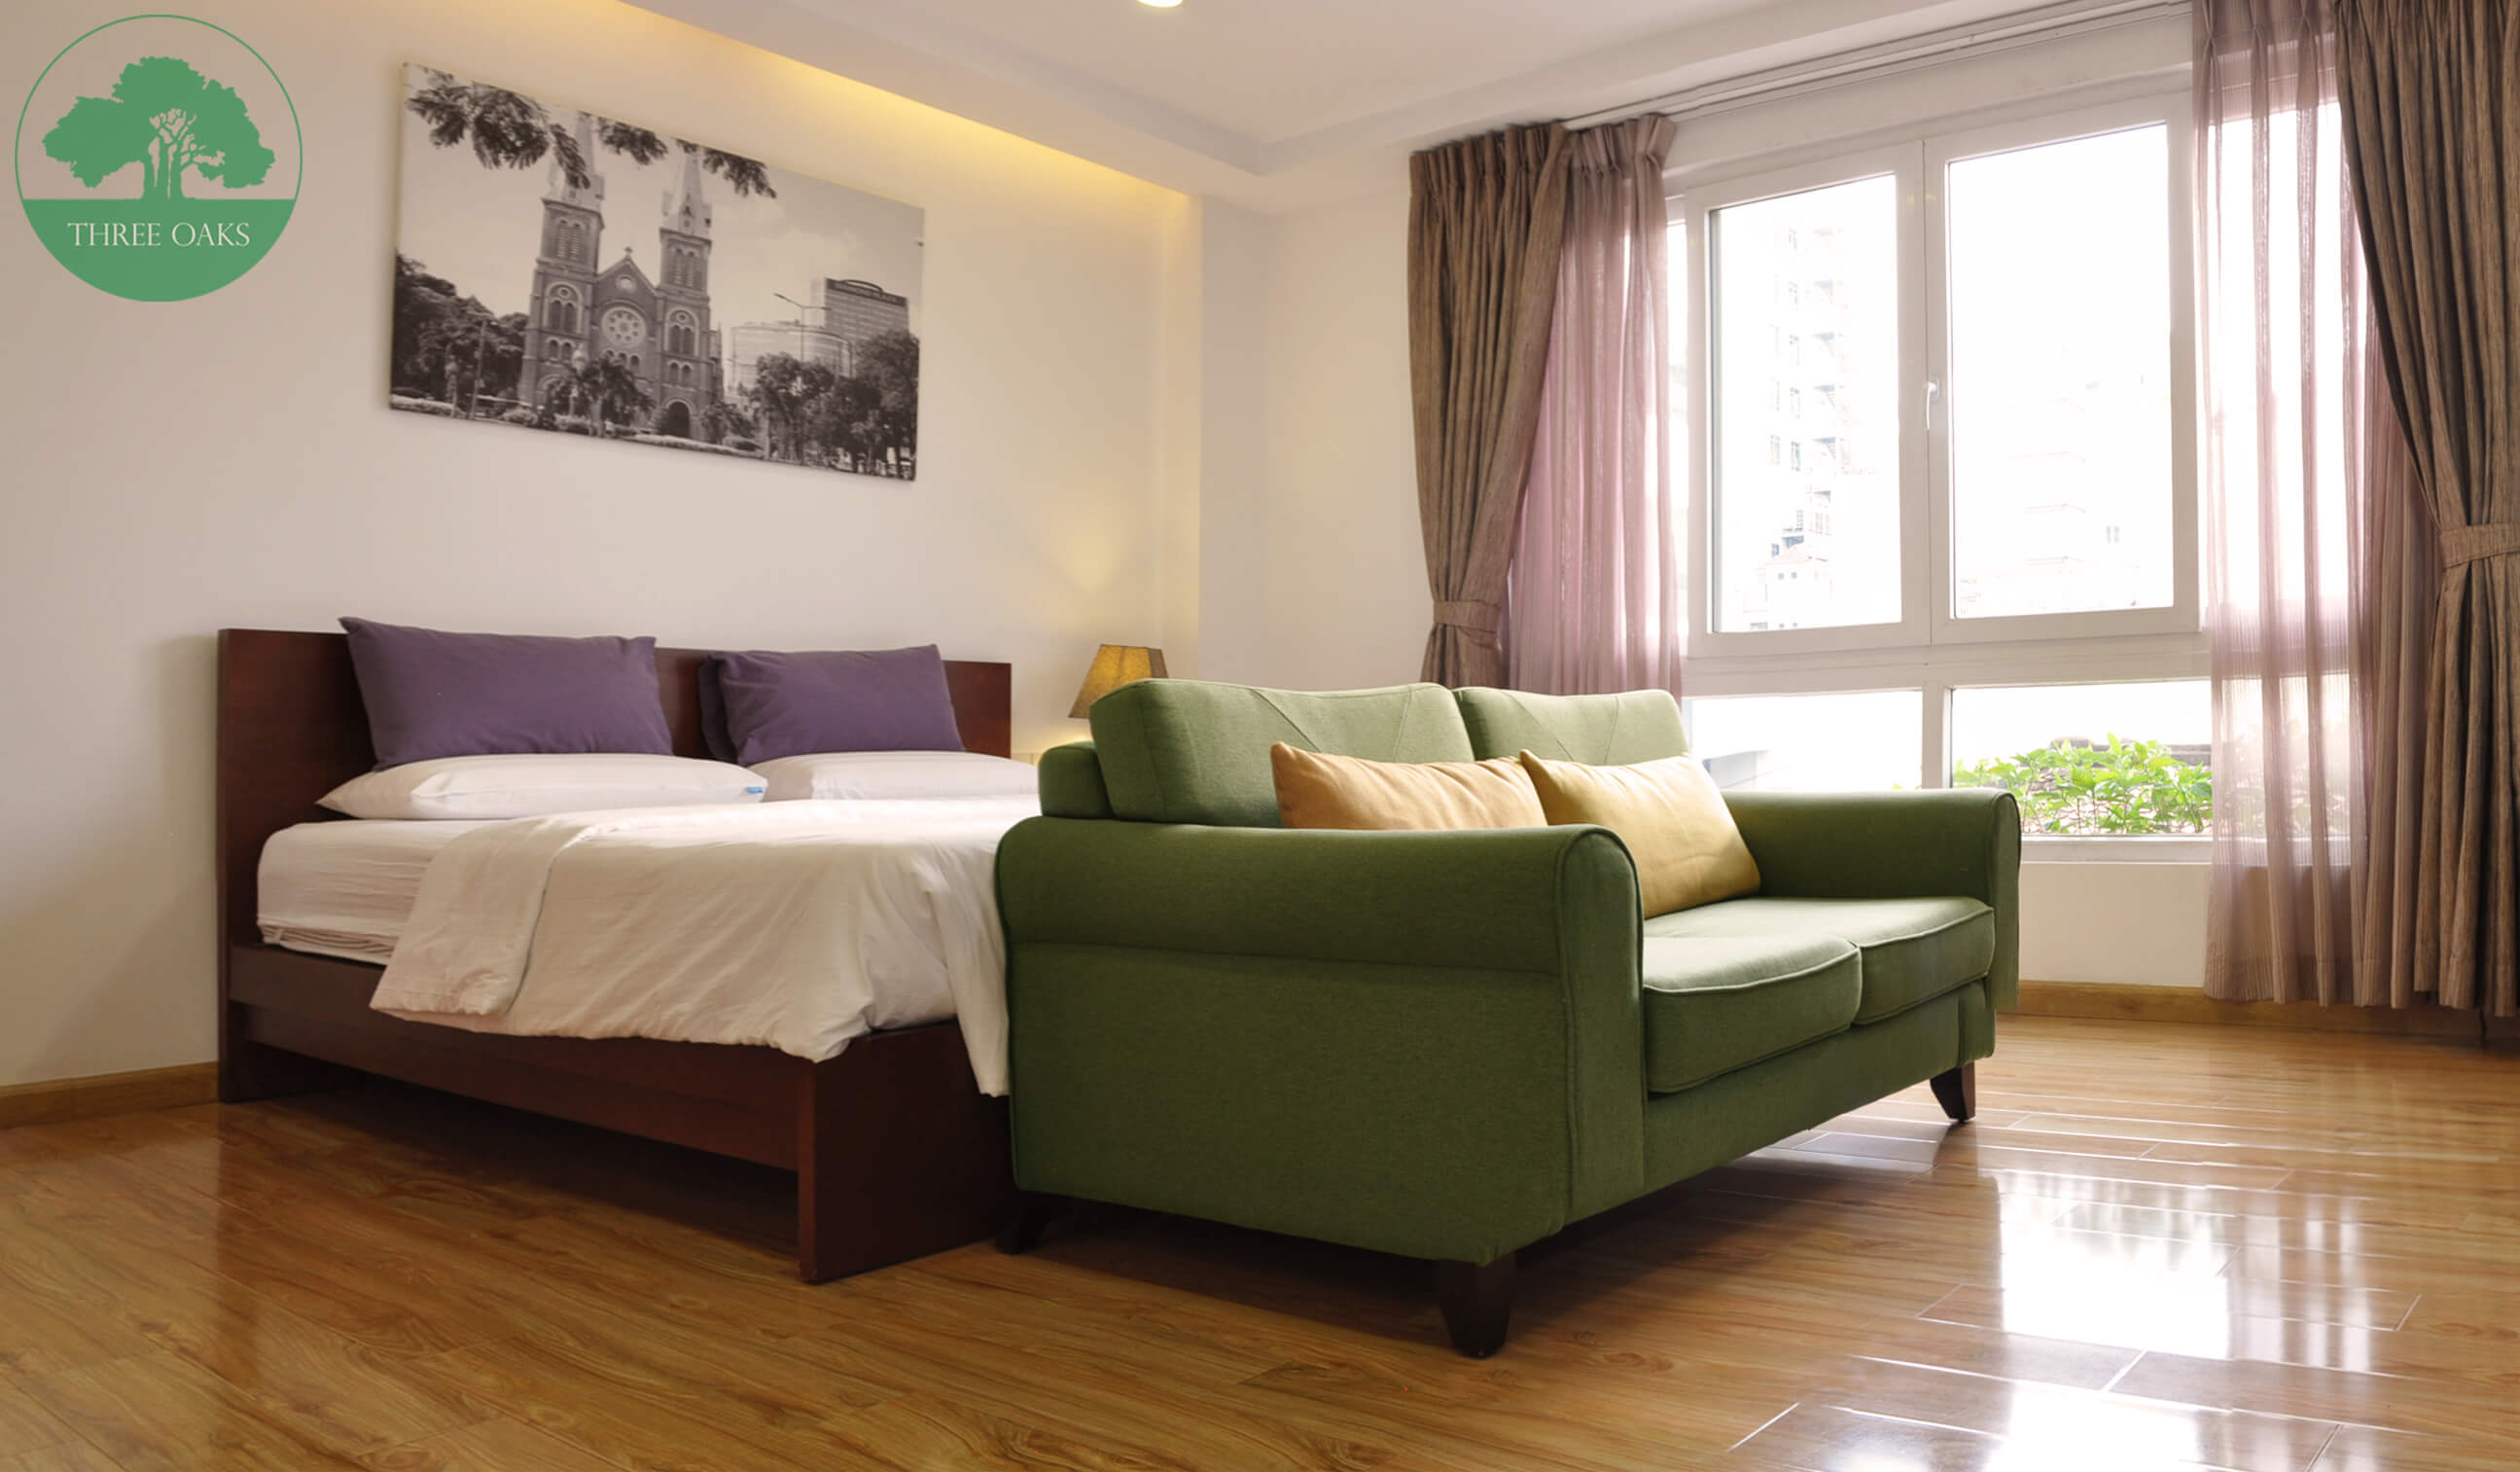 serviced-apartment-in-hcm-three-oaks-2-tybe-a-48